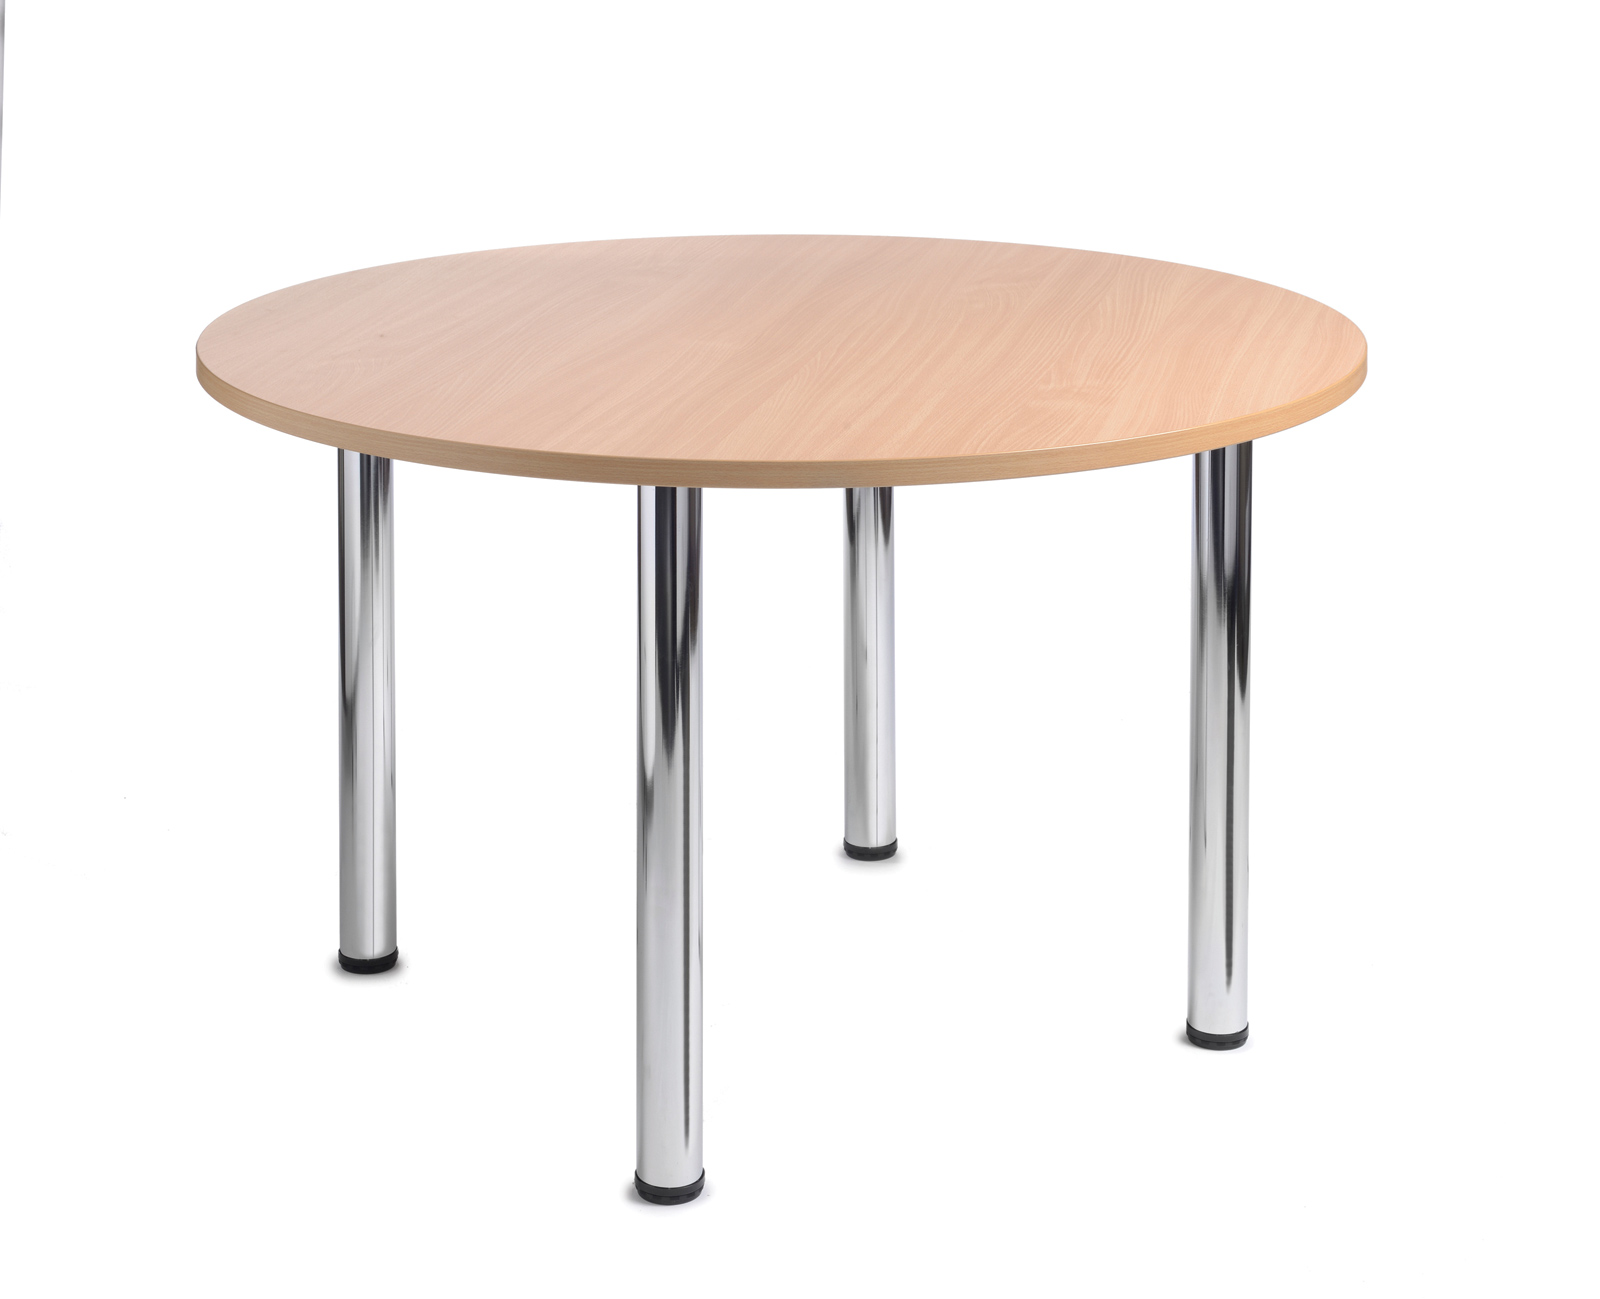 Turin Round Table With Chrome Legs 1200mm Beech